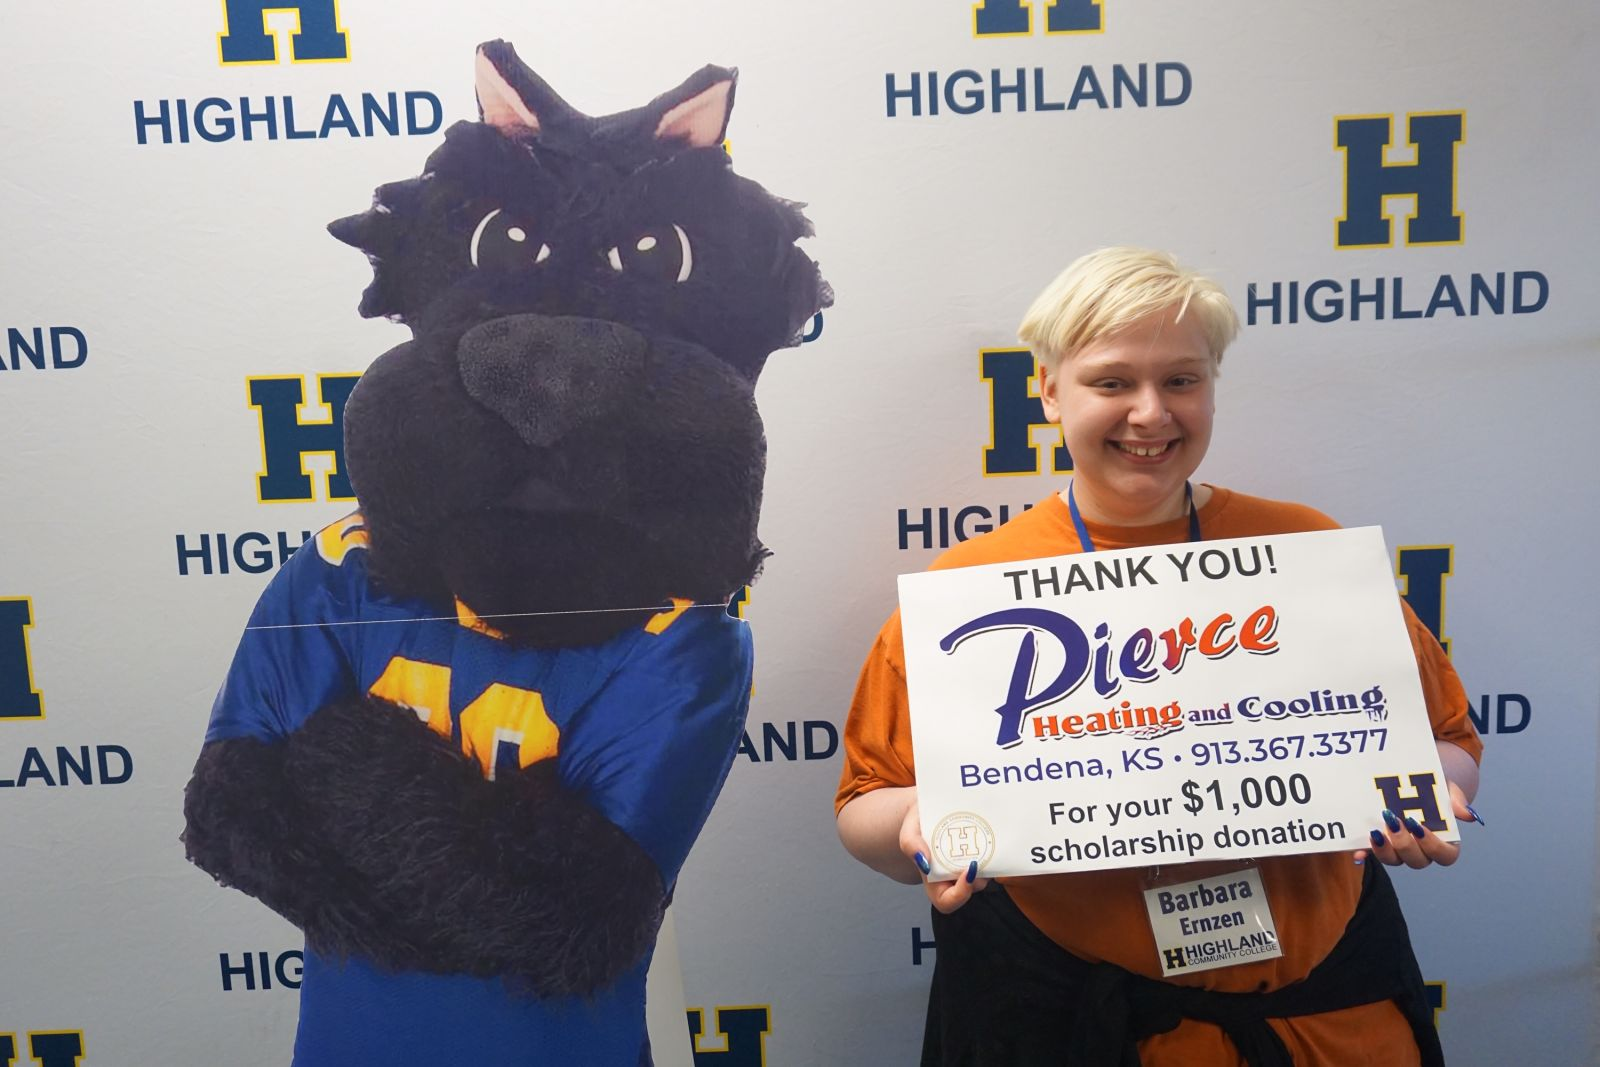 Barbara Ernzen, a senior at Troy High School, Troy, KS won a $1000 scholarship sponsored by Pierce Heating & Cooling of Bendena, KS.